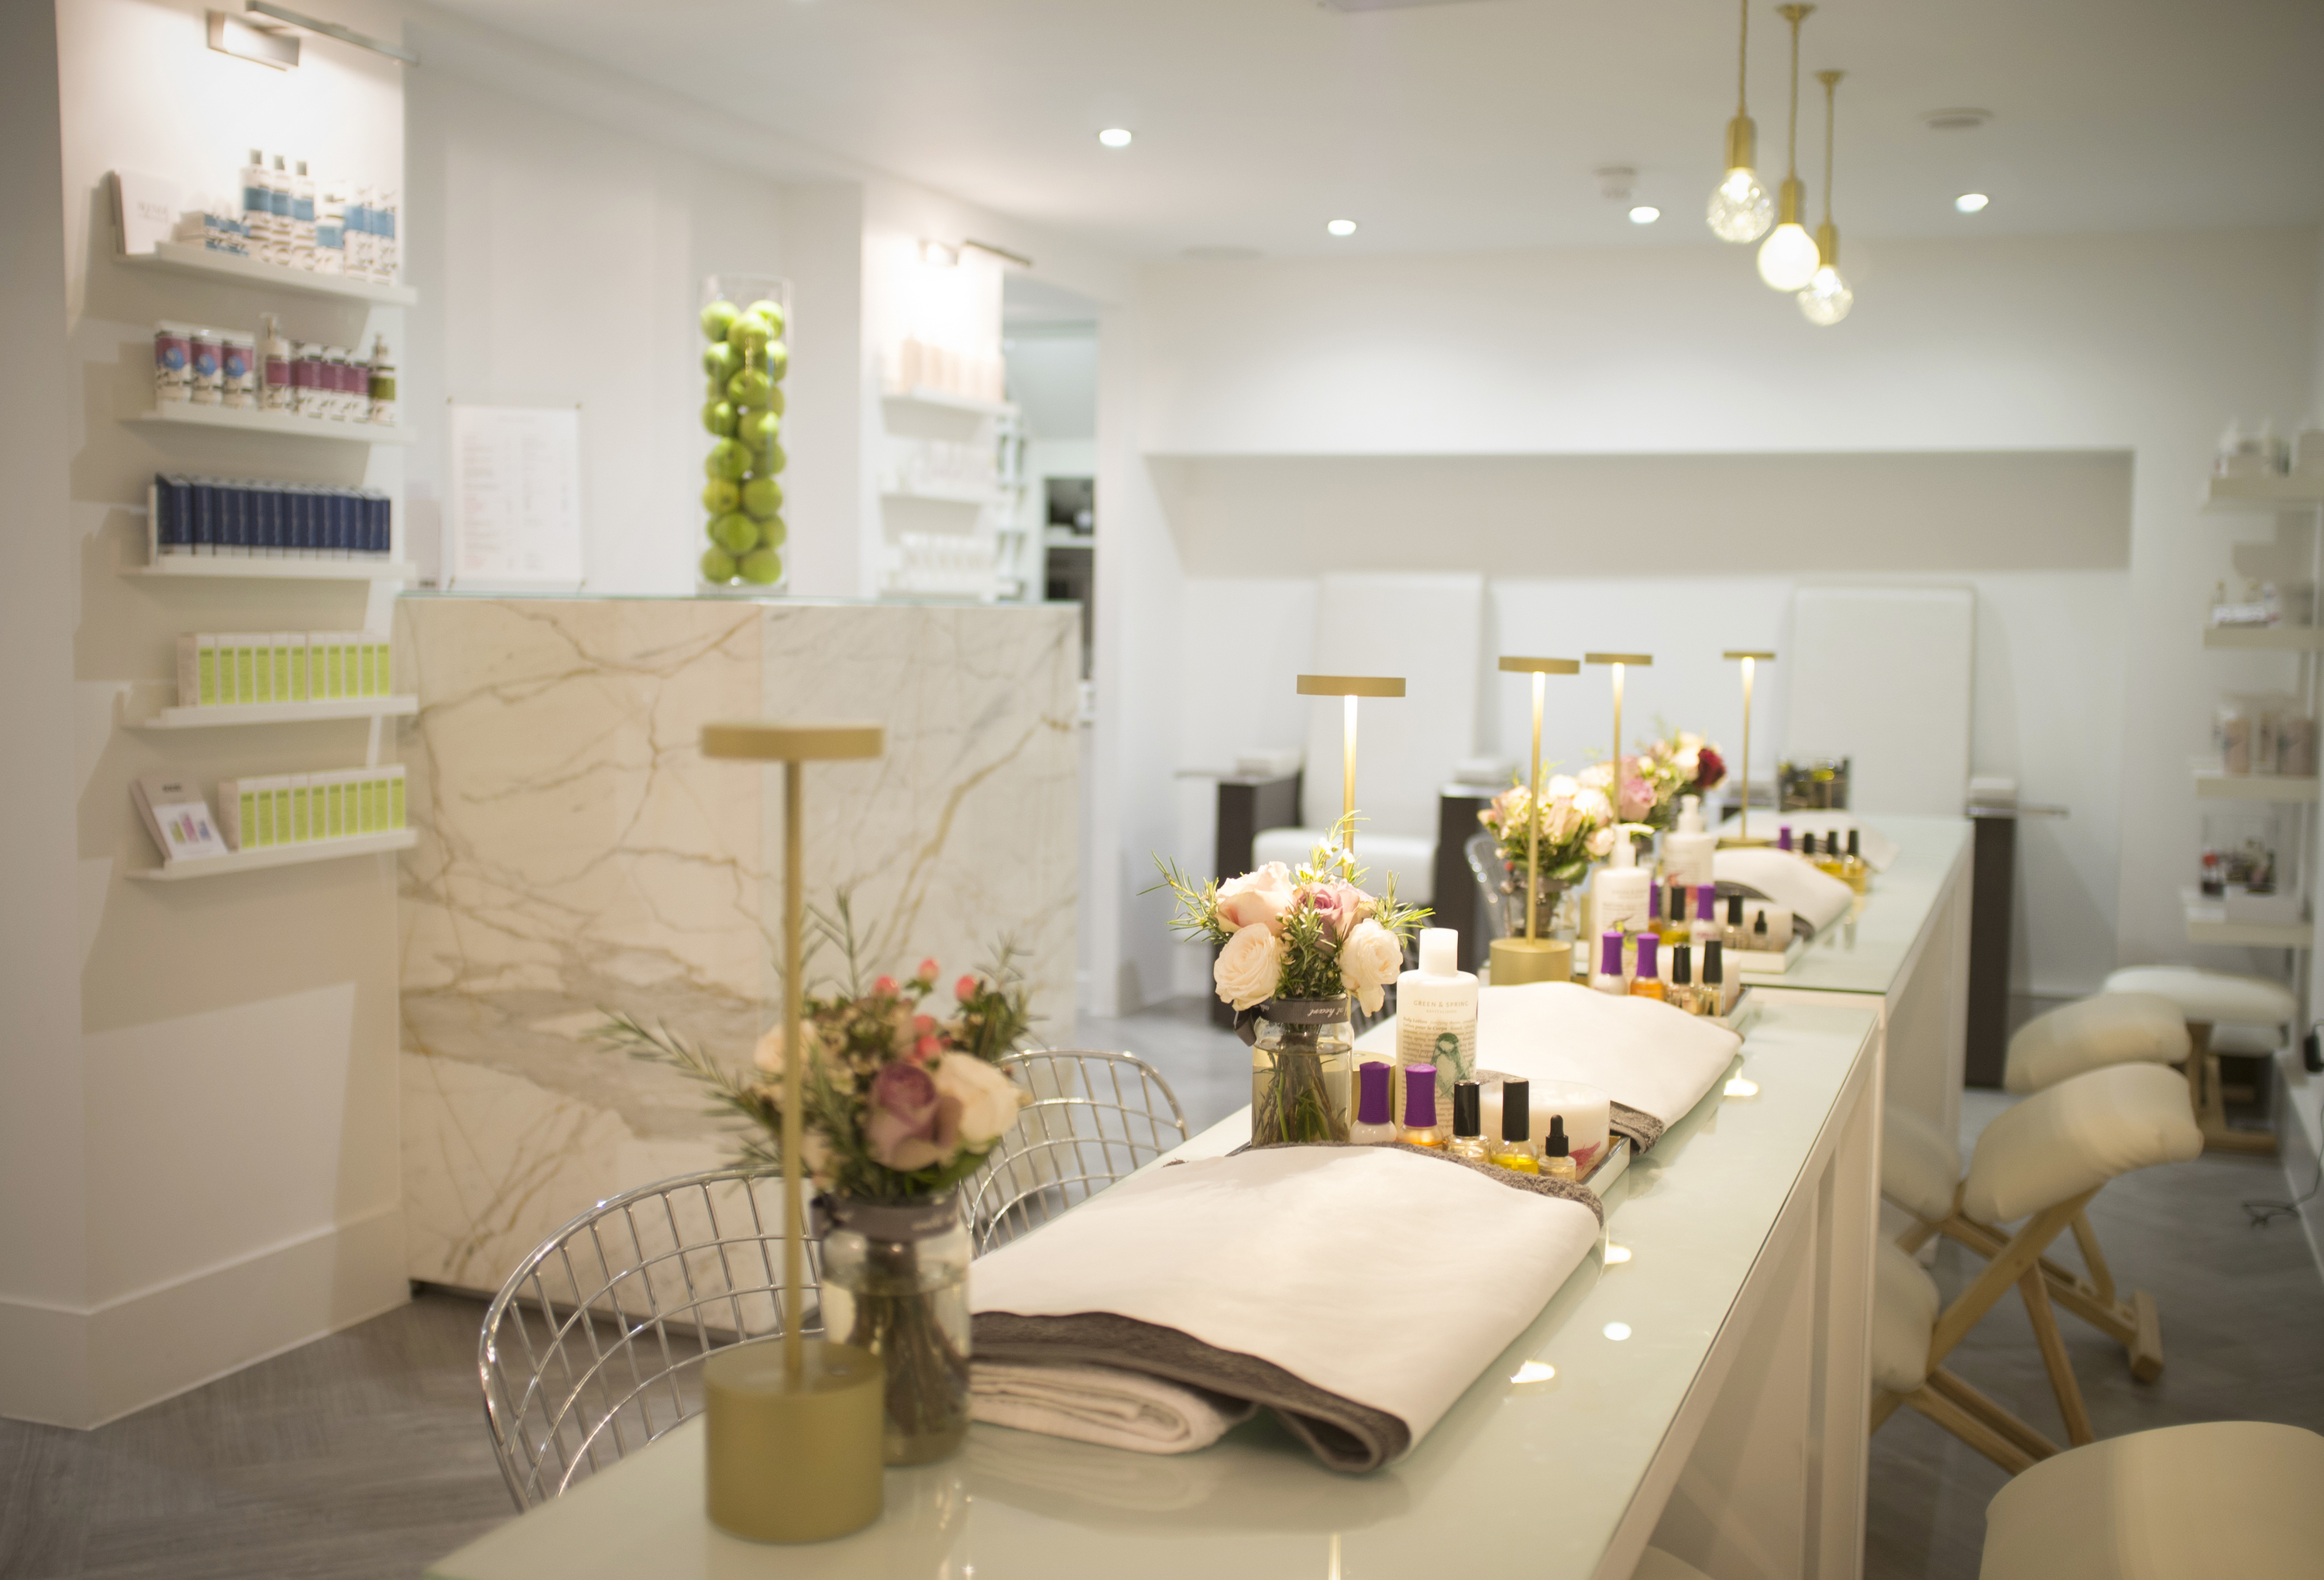 Quick Beauty Treatments In London Health And Beauty In